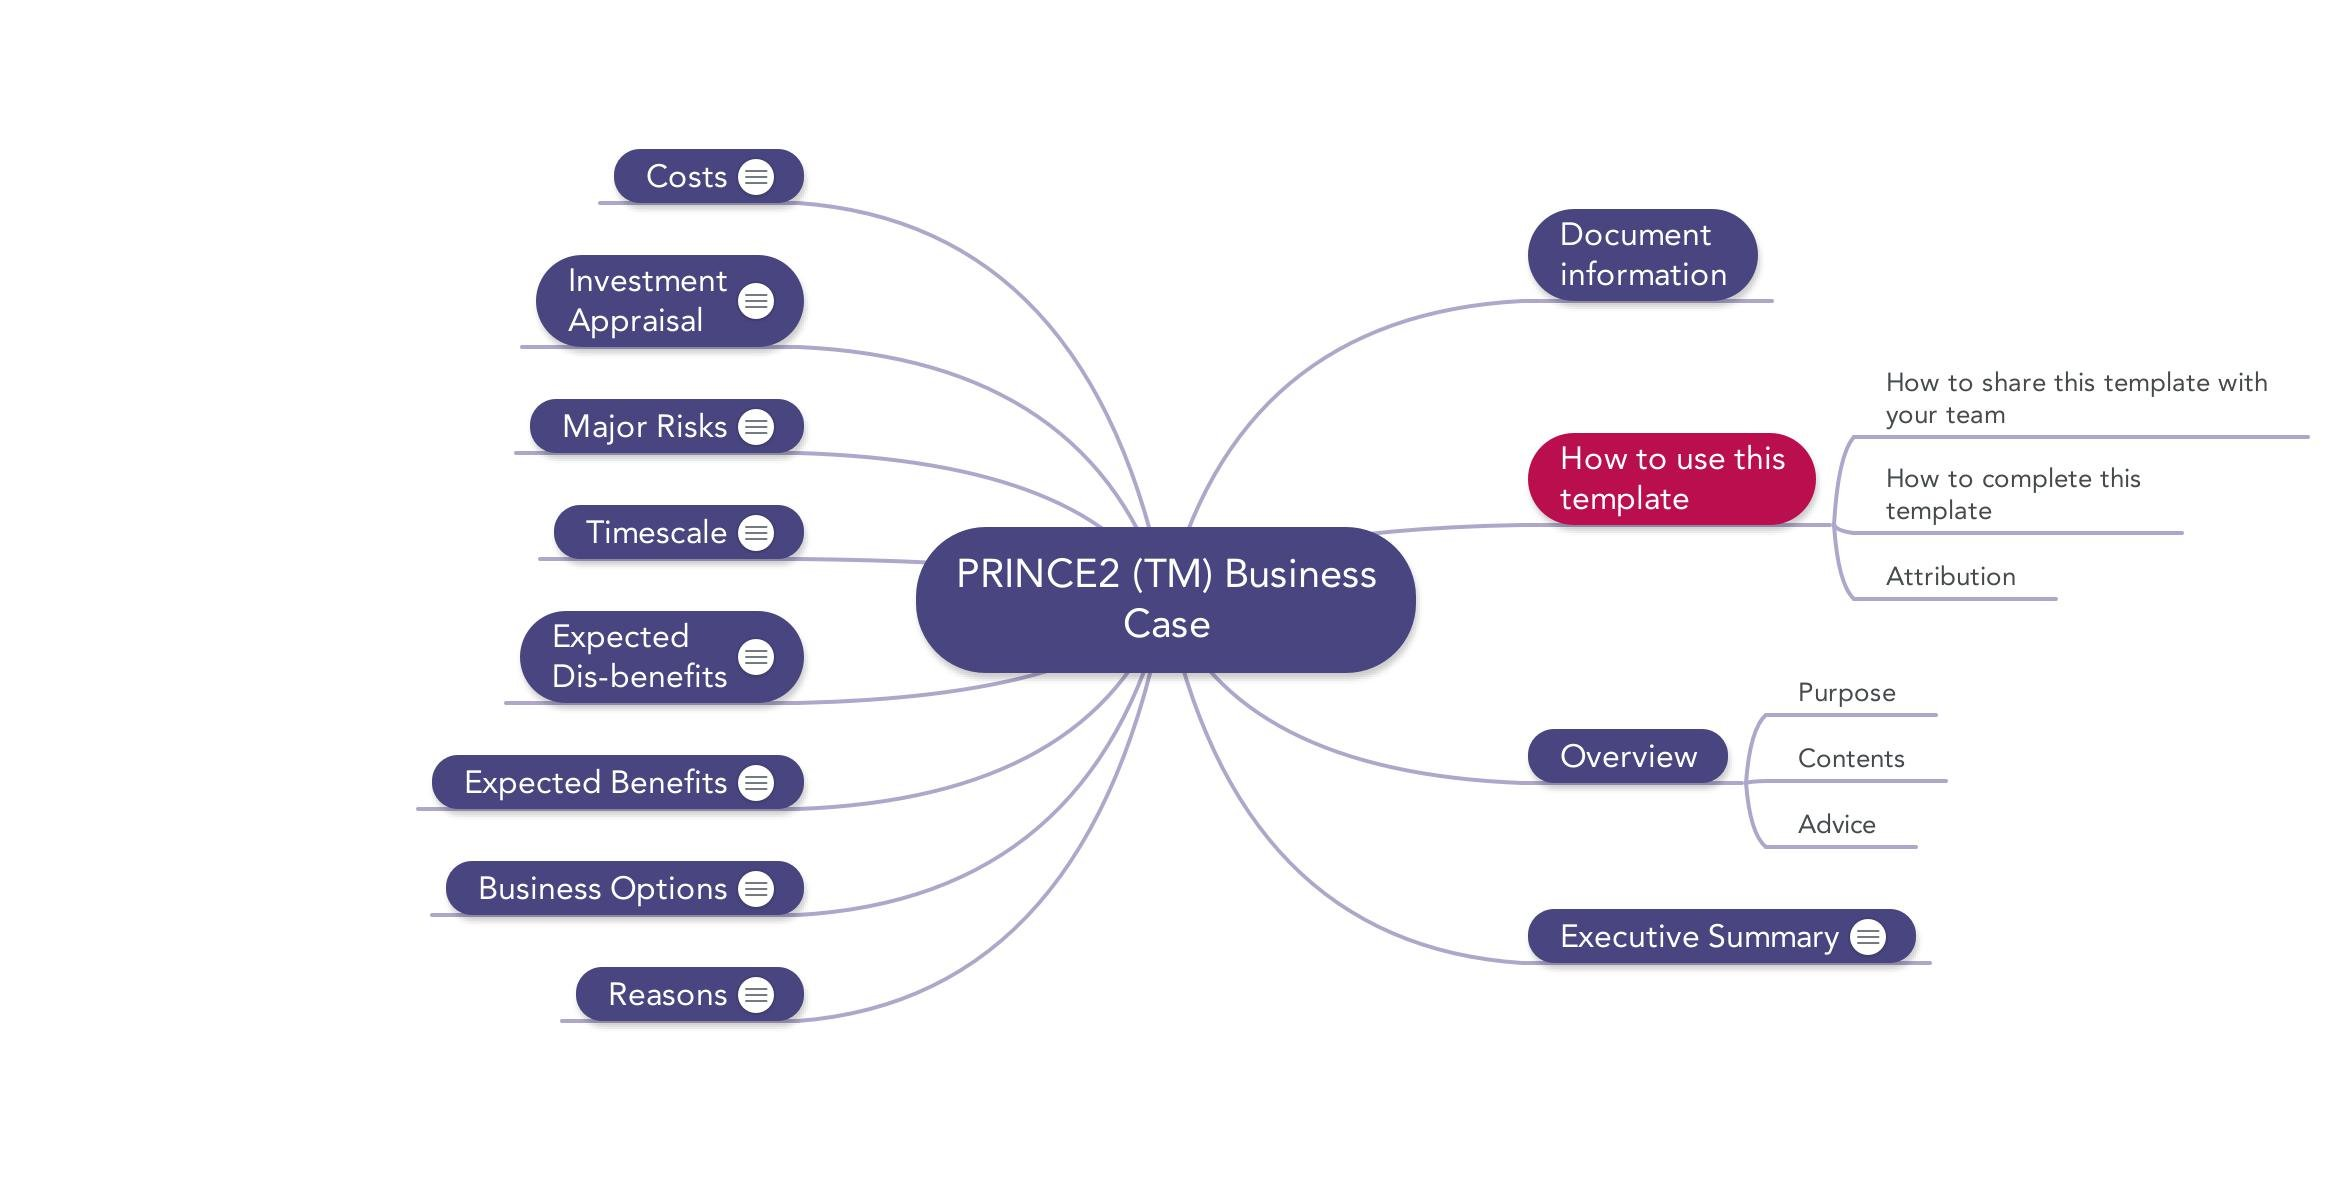 Prince2 business case download template prince2 business case fbccfo Images